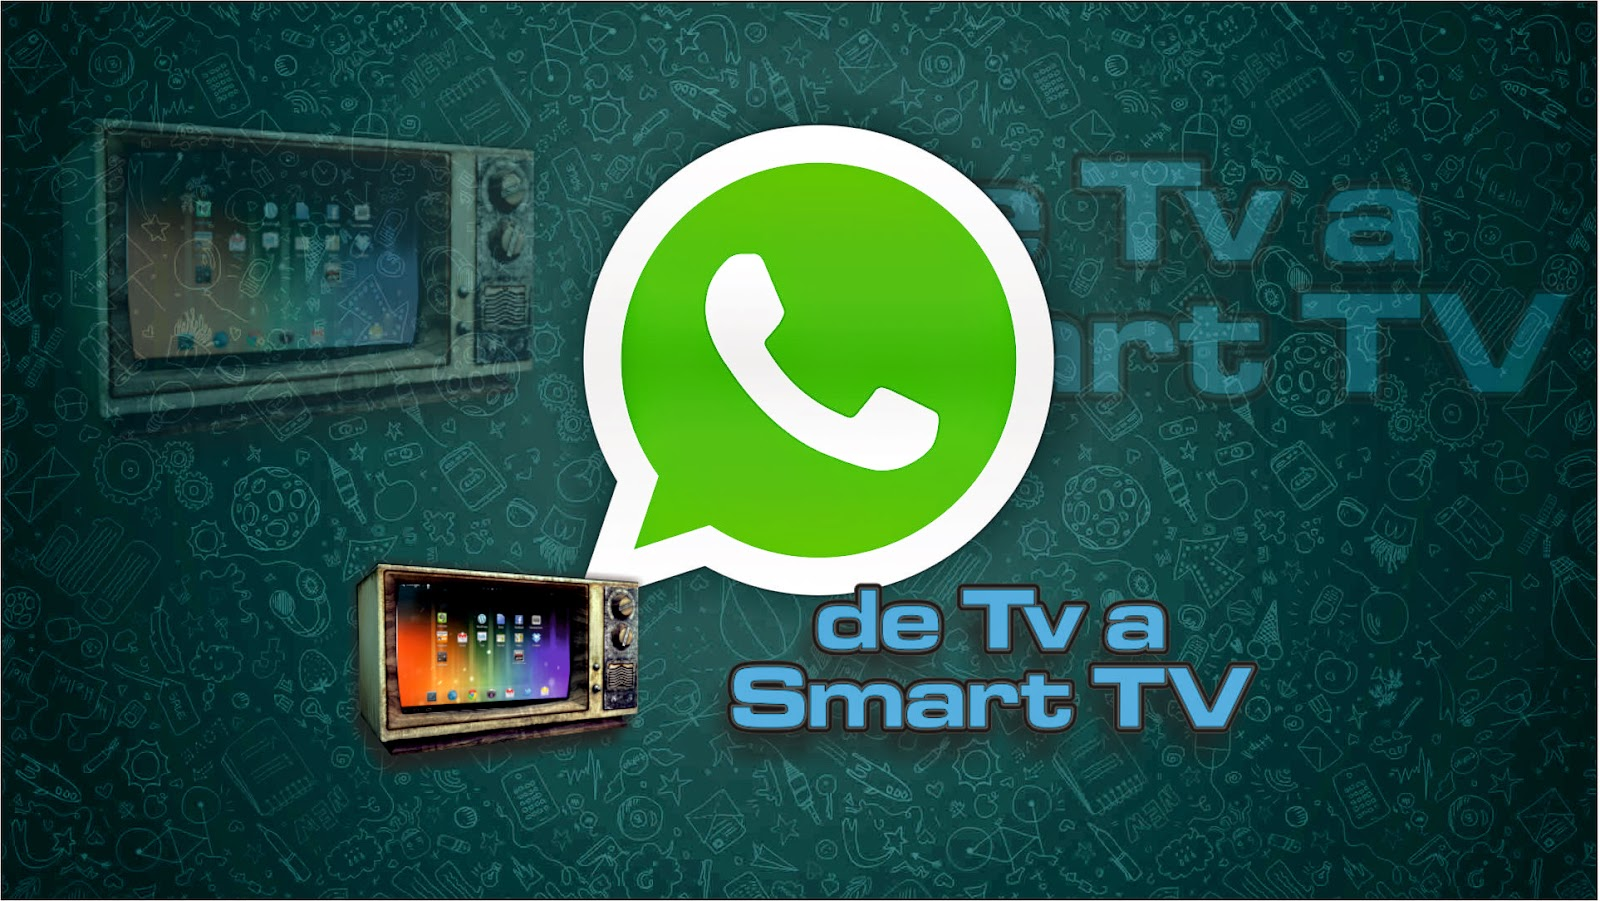 WhatsApp 2.12.62 De TV a SmartTV